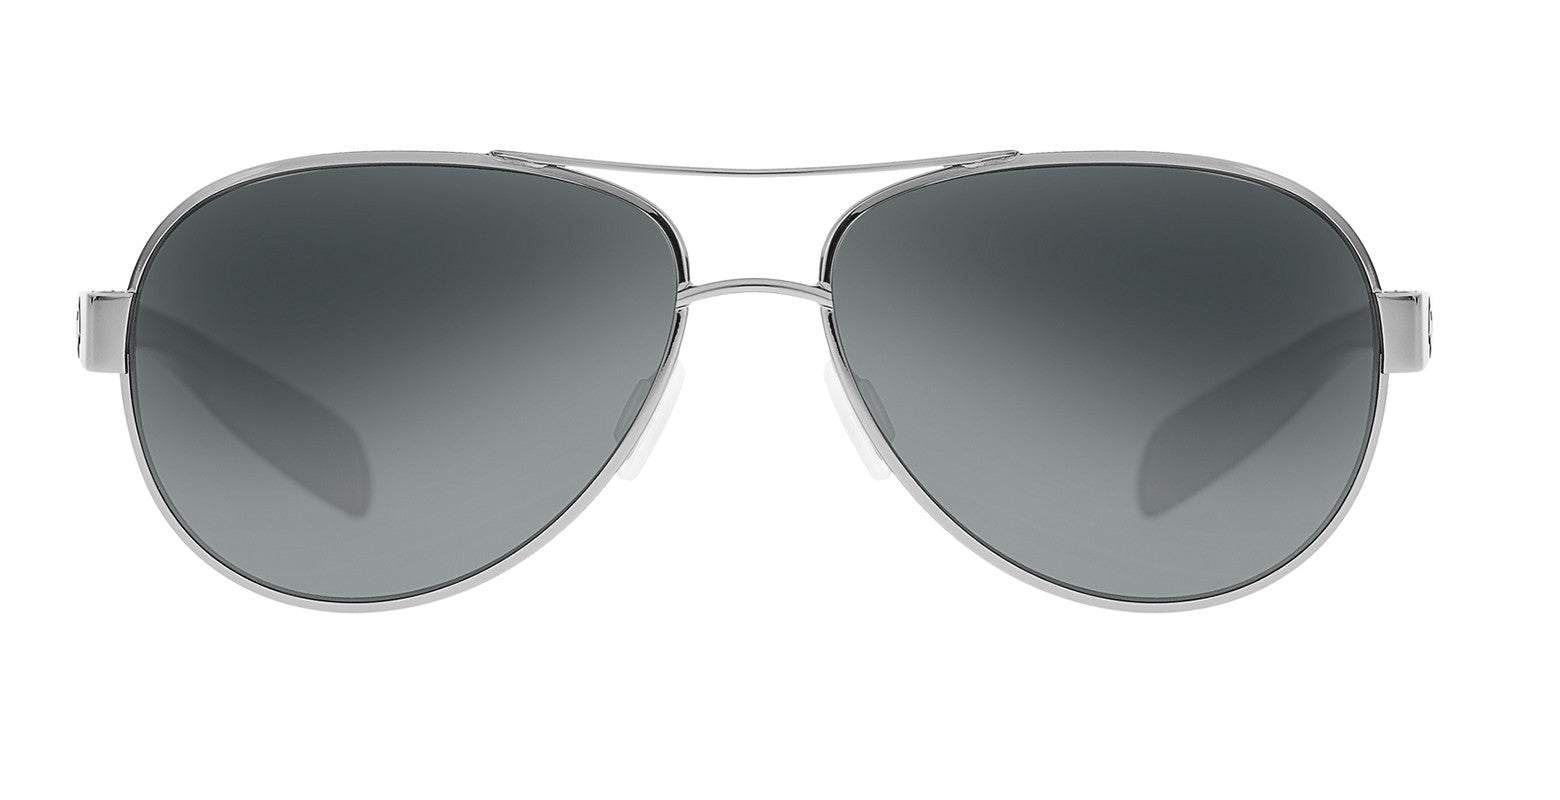 Native - Haskill Chrome/Gloss Black Sunglasses, Gray Lenses